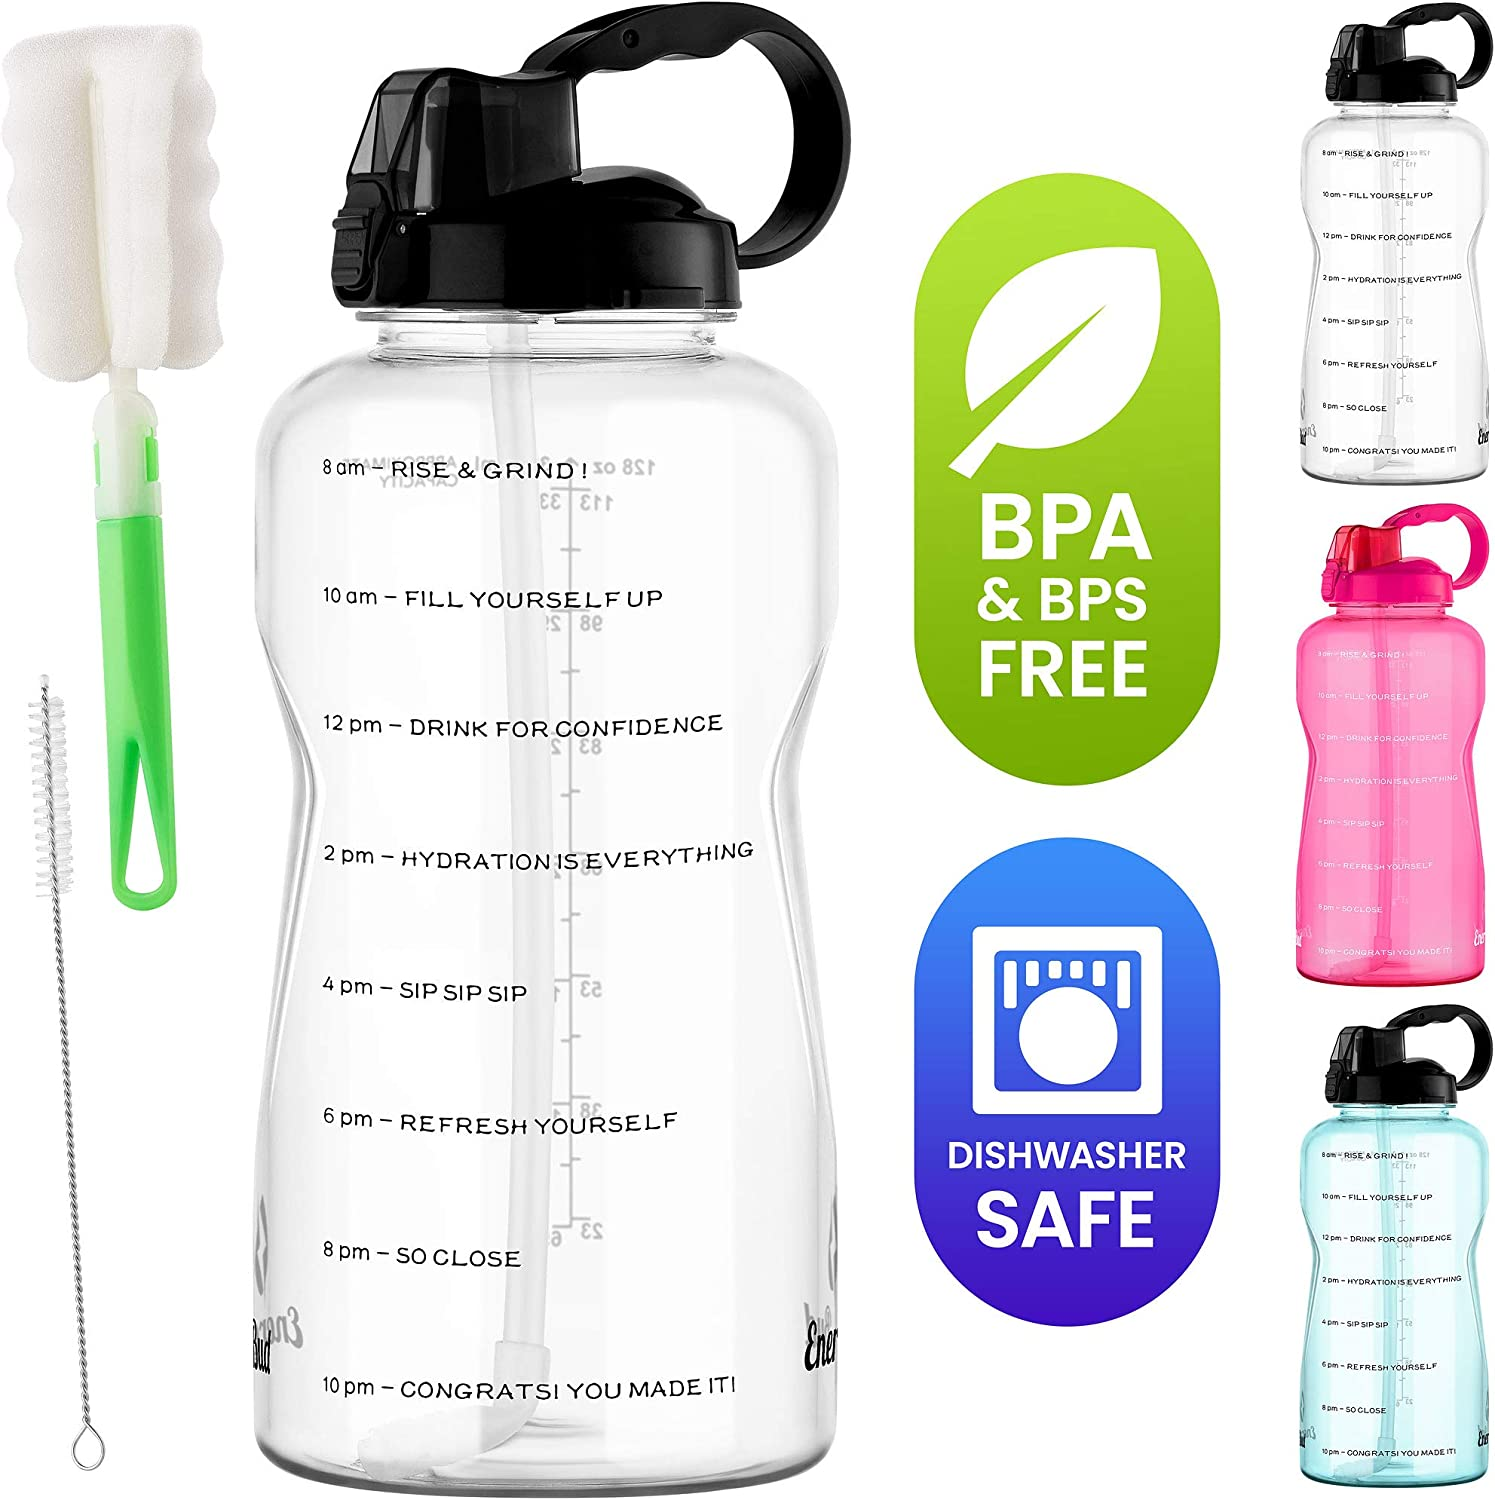 Energybud 1 Gallon Water Bottle With Straw And Handle Dishwasher Safe Bps Bpa Free 2 Cleaning Brush Motivational 128oz Water Jug With Time Markers Dust Cover Wide Mouth Tritan Gym